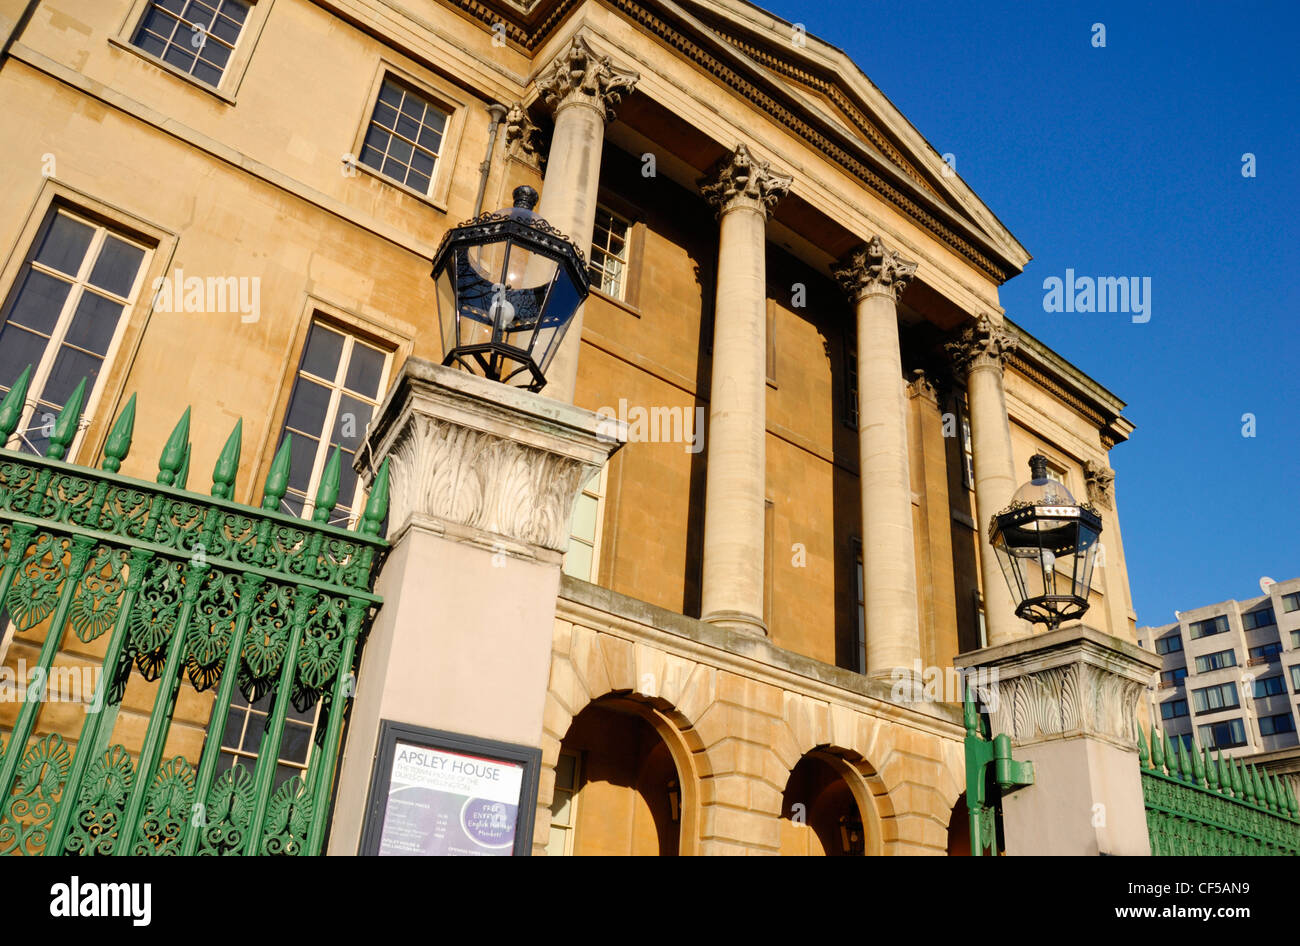 The facade of the historic Apsley House at Hyde Park Corner. - Stock Image